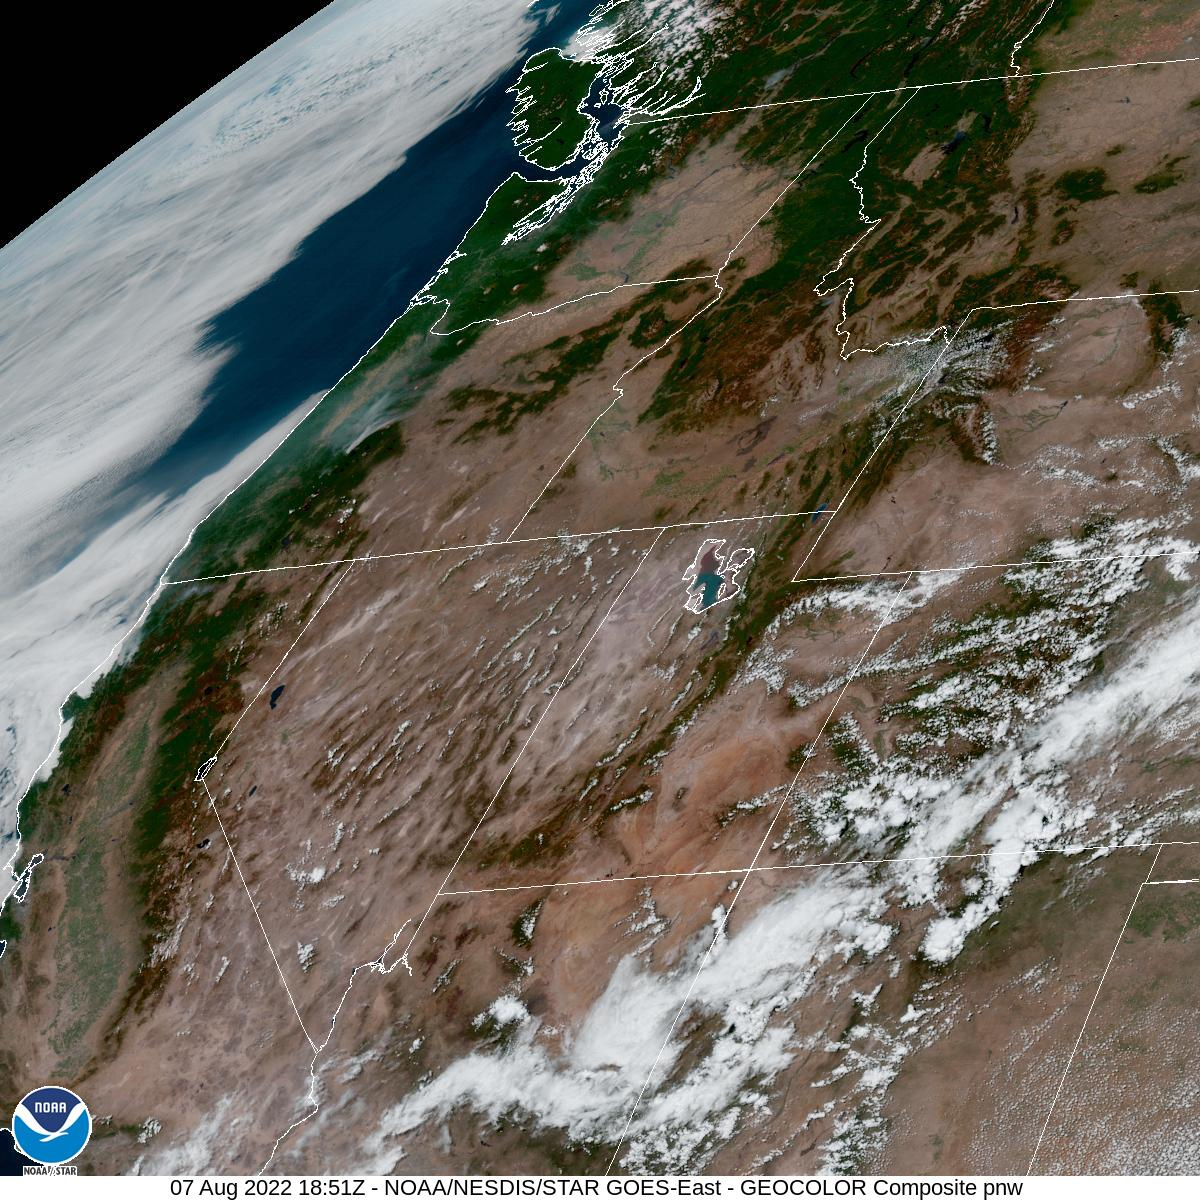 Latest GOES-16 Geocolor Image of Pacific Northwest sector